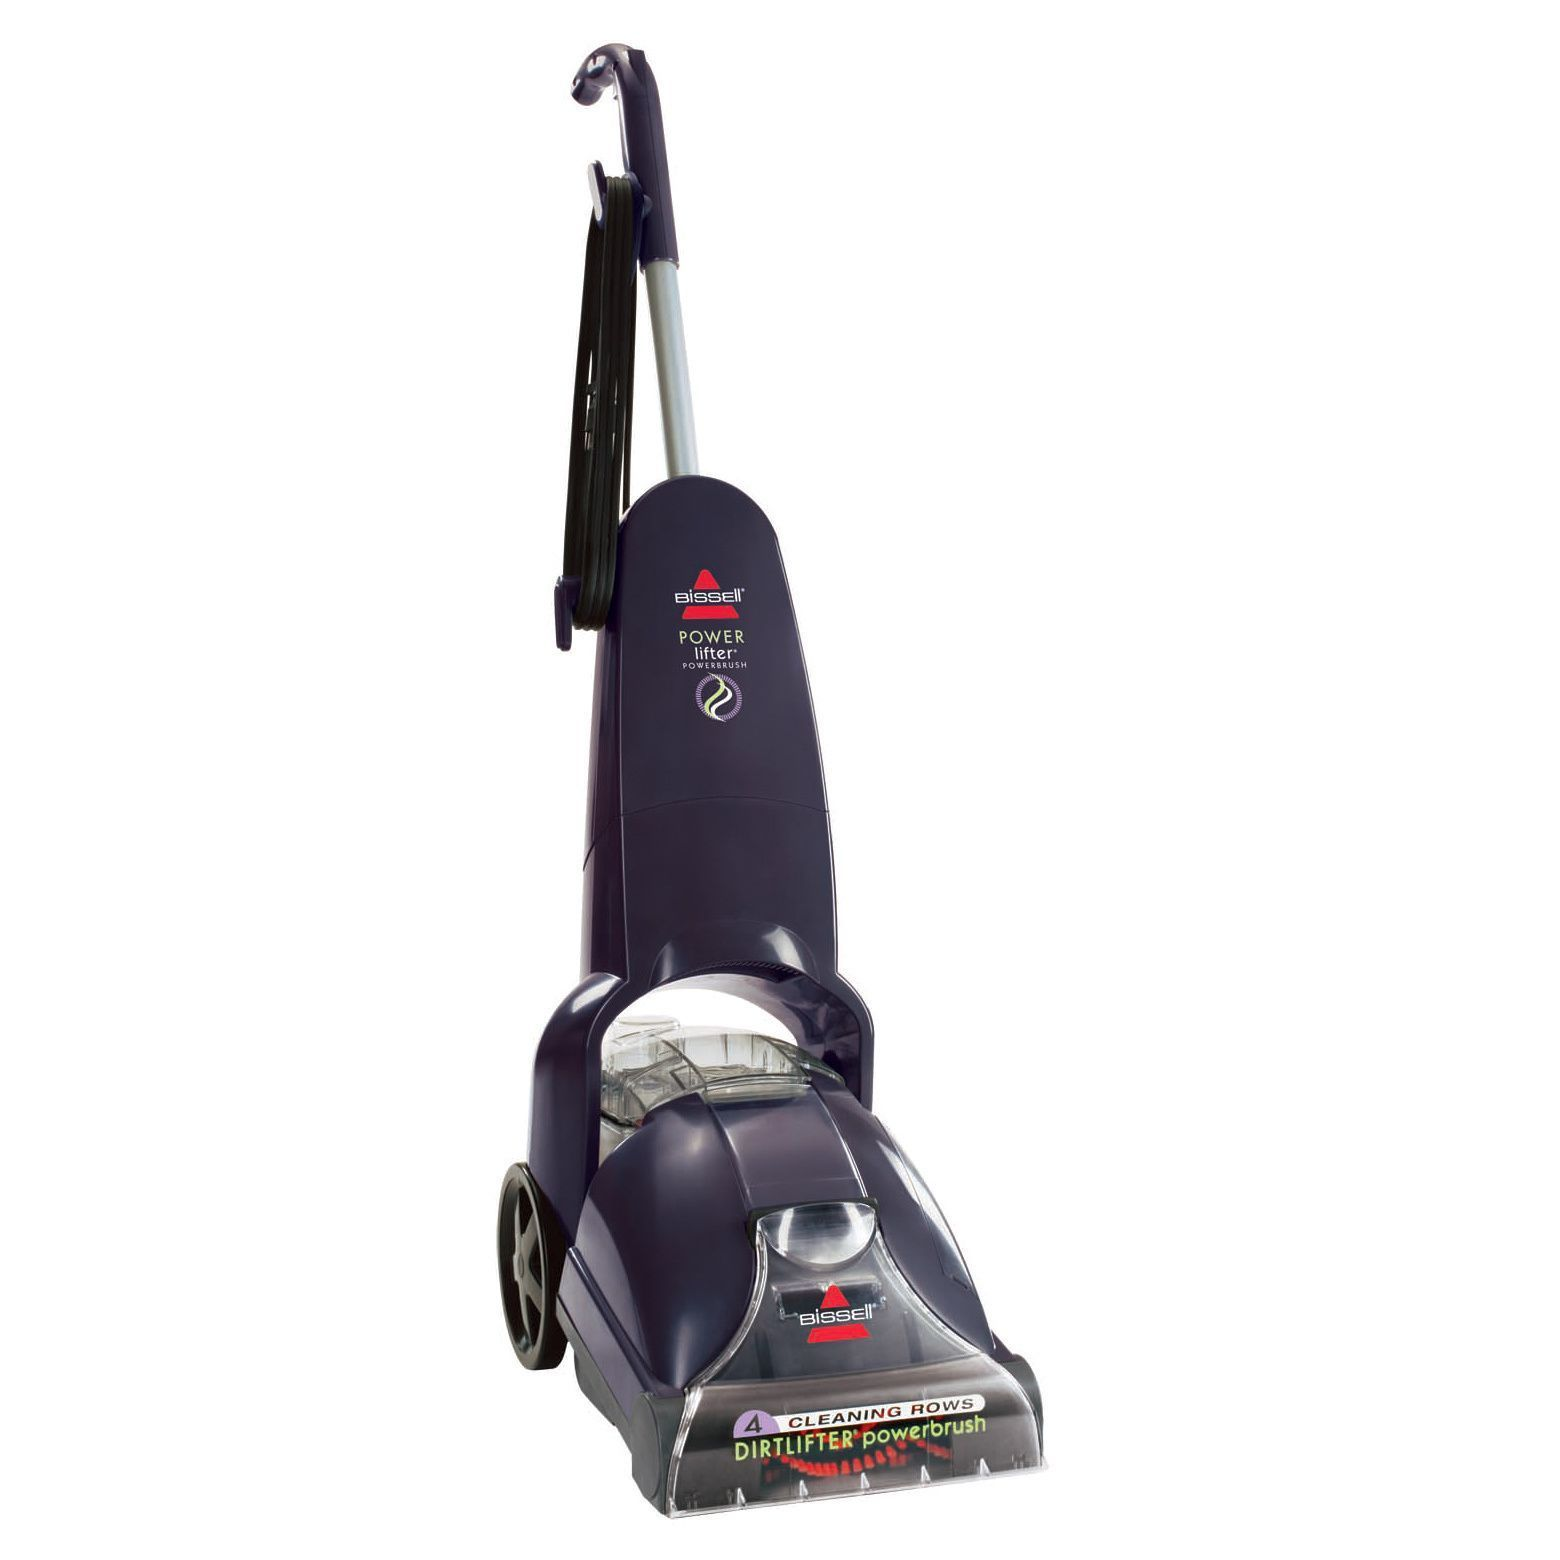 Portable Lightweight And Easy To Use The Bissell Powerlifter